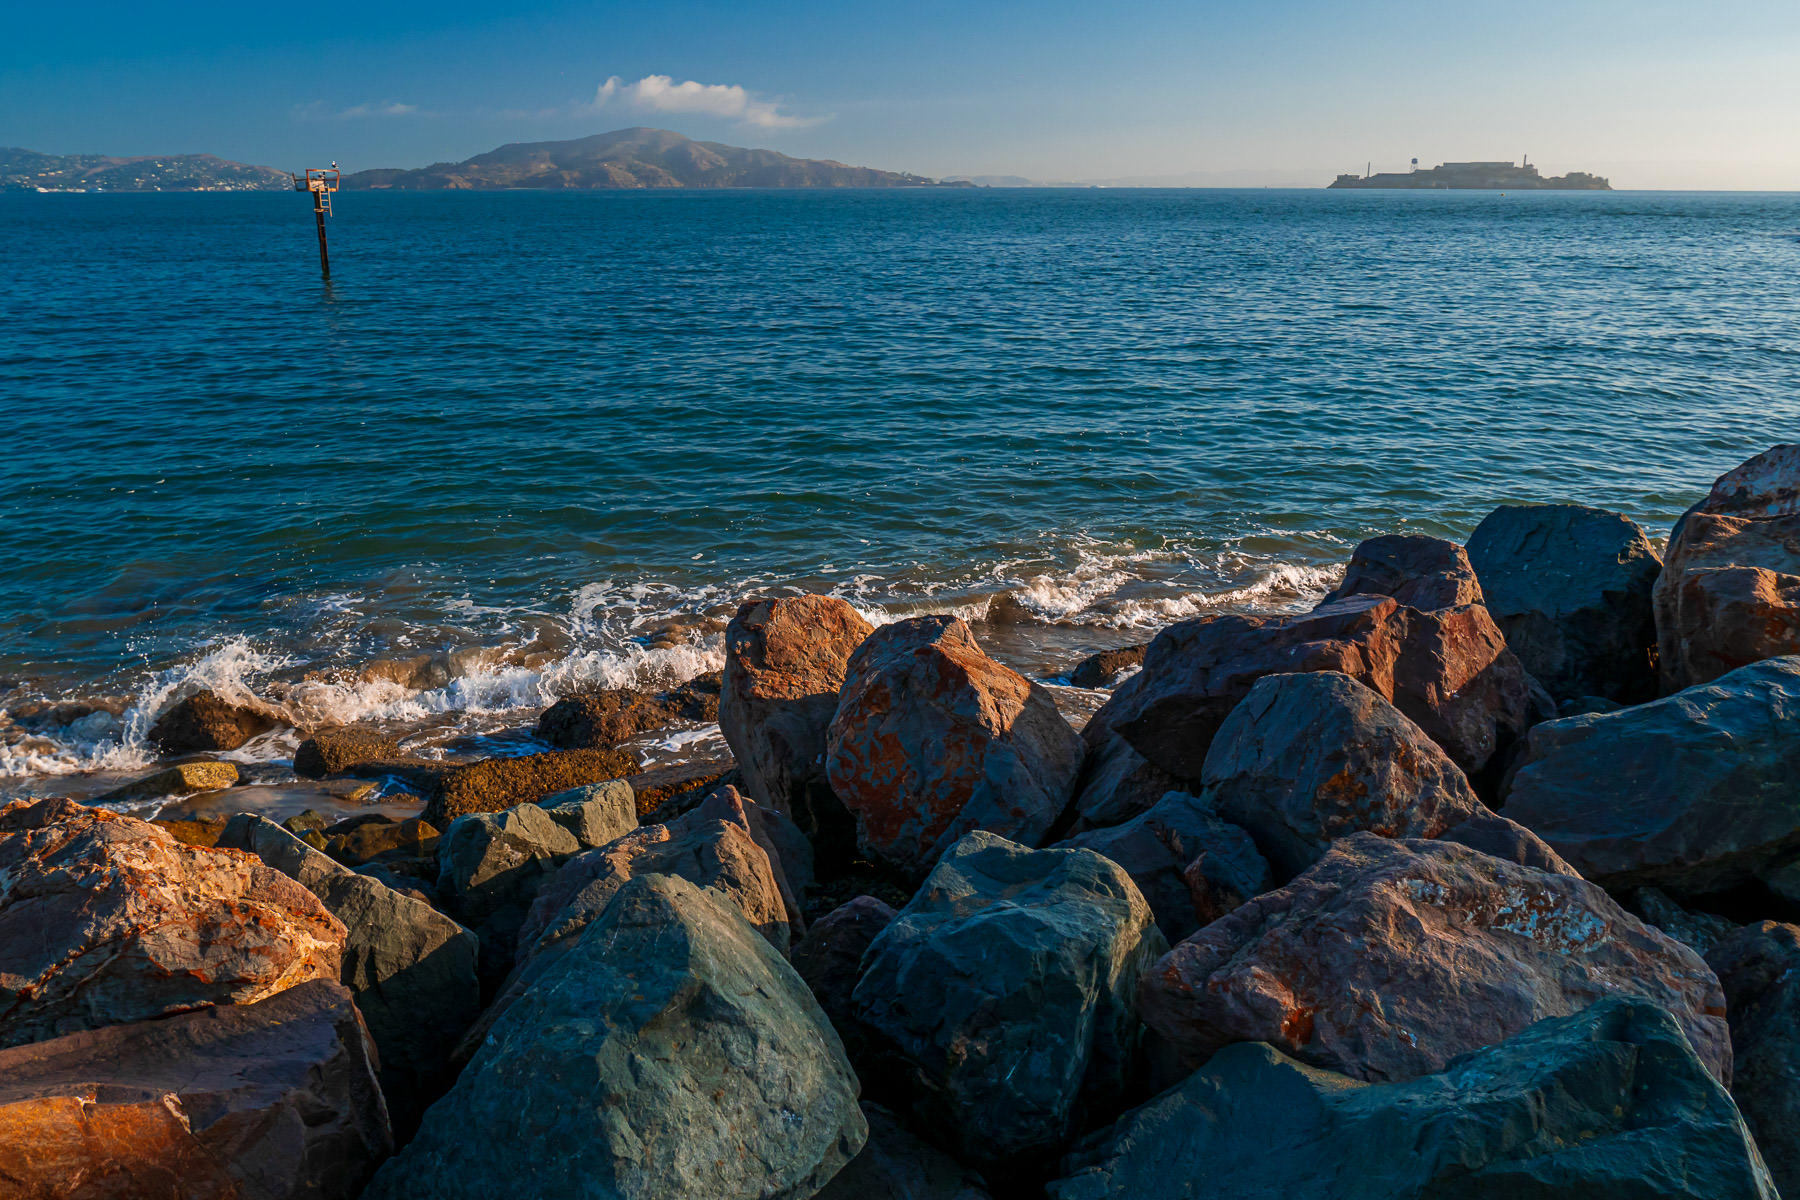 The waters of San Francisco Bay lap at the rocky shore of the Crissy Field beach.